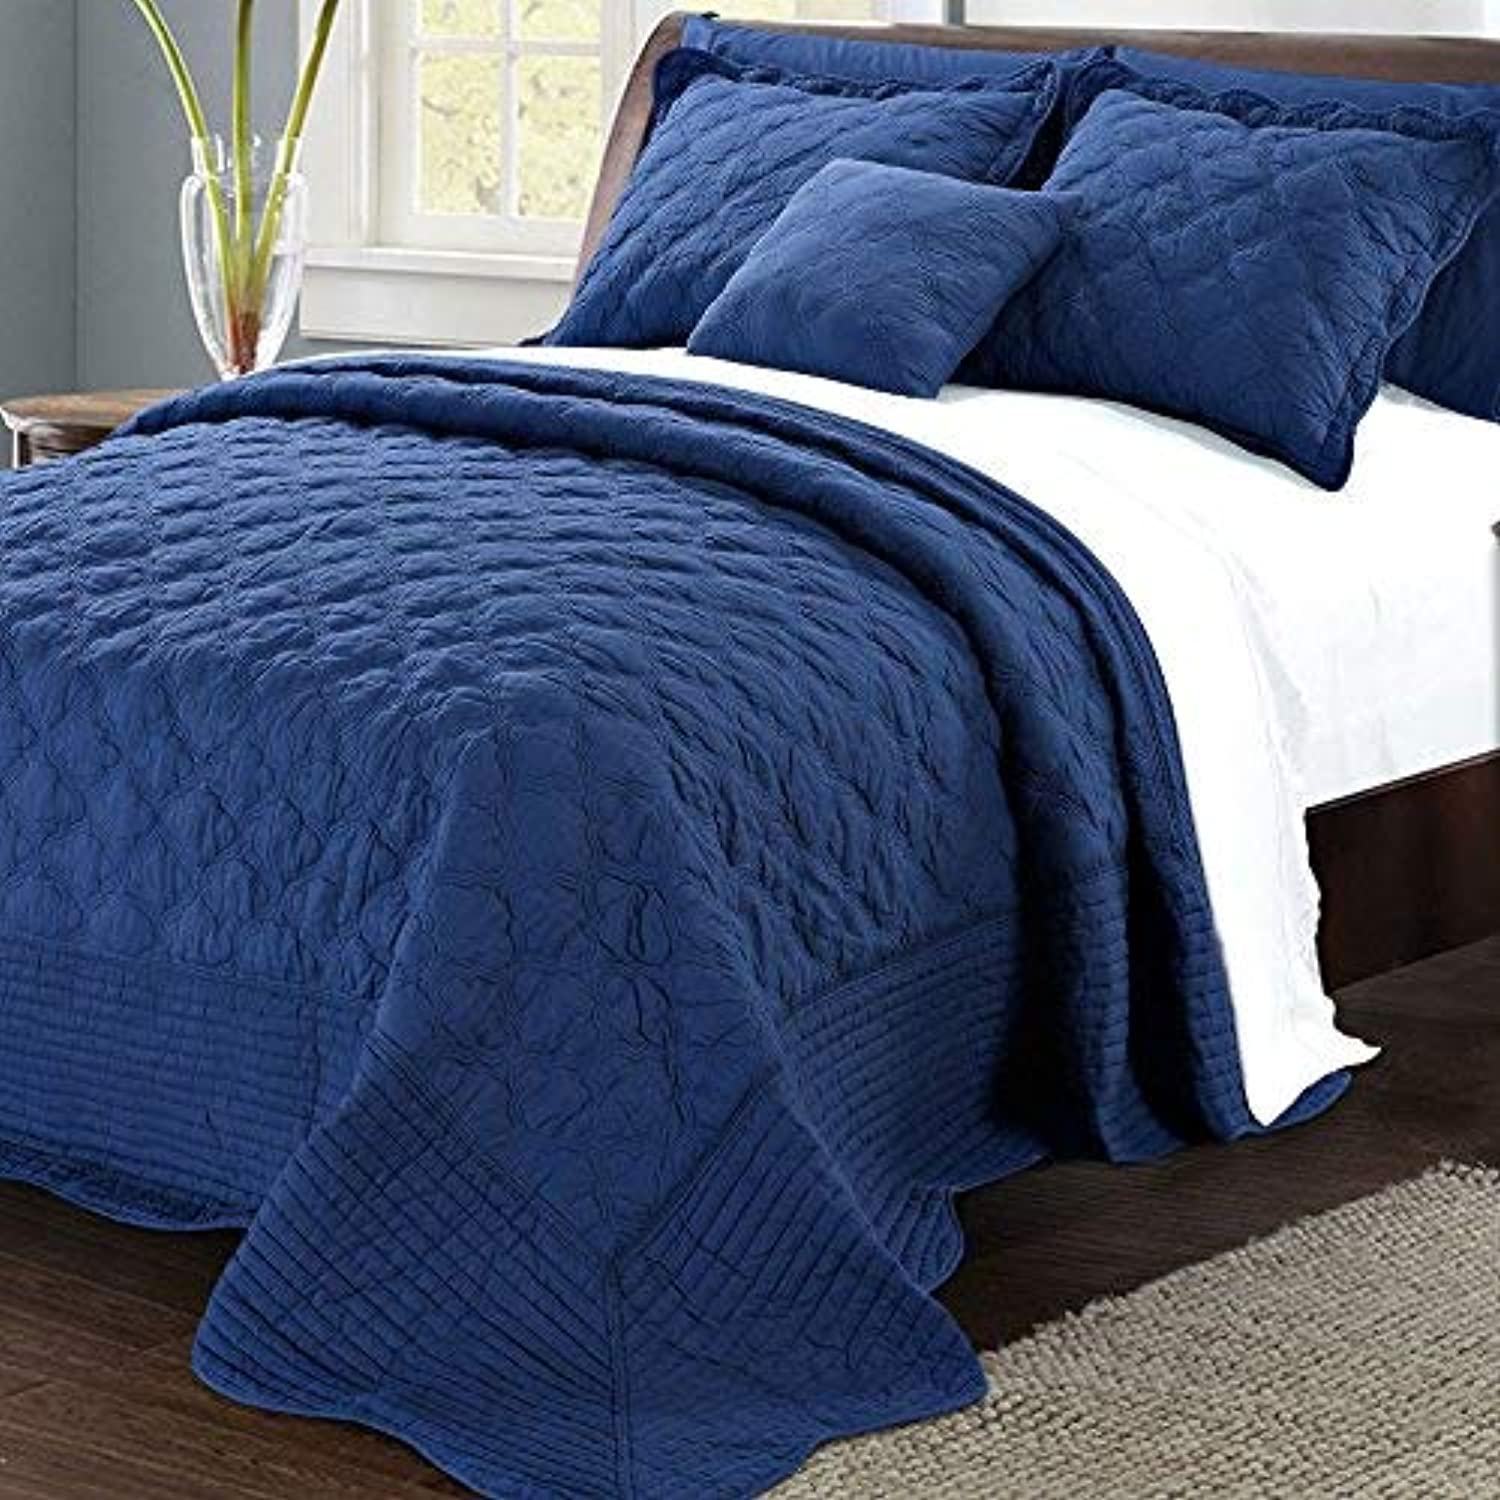 Serenta Quilted Cotton 4 Piece Bedspread Set, Queen, Dark bluee